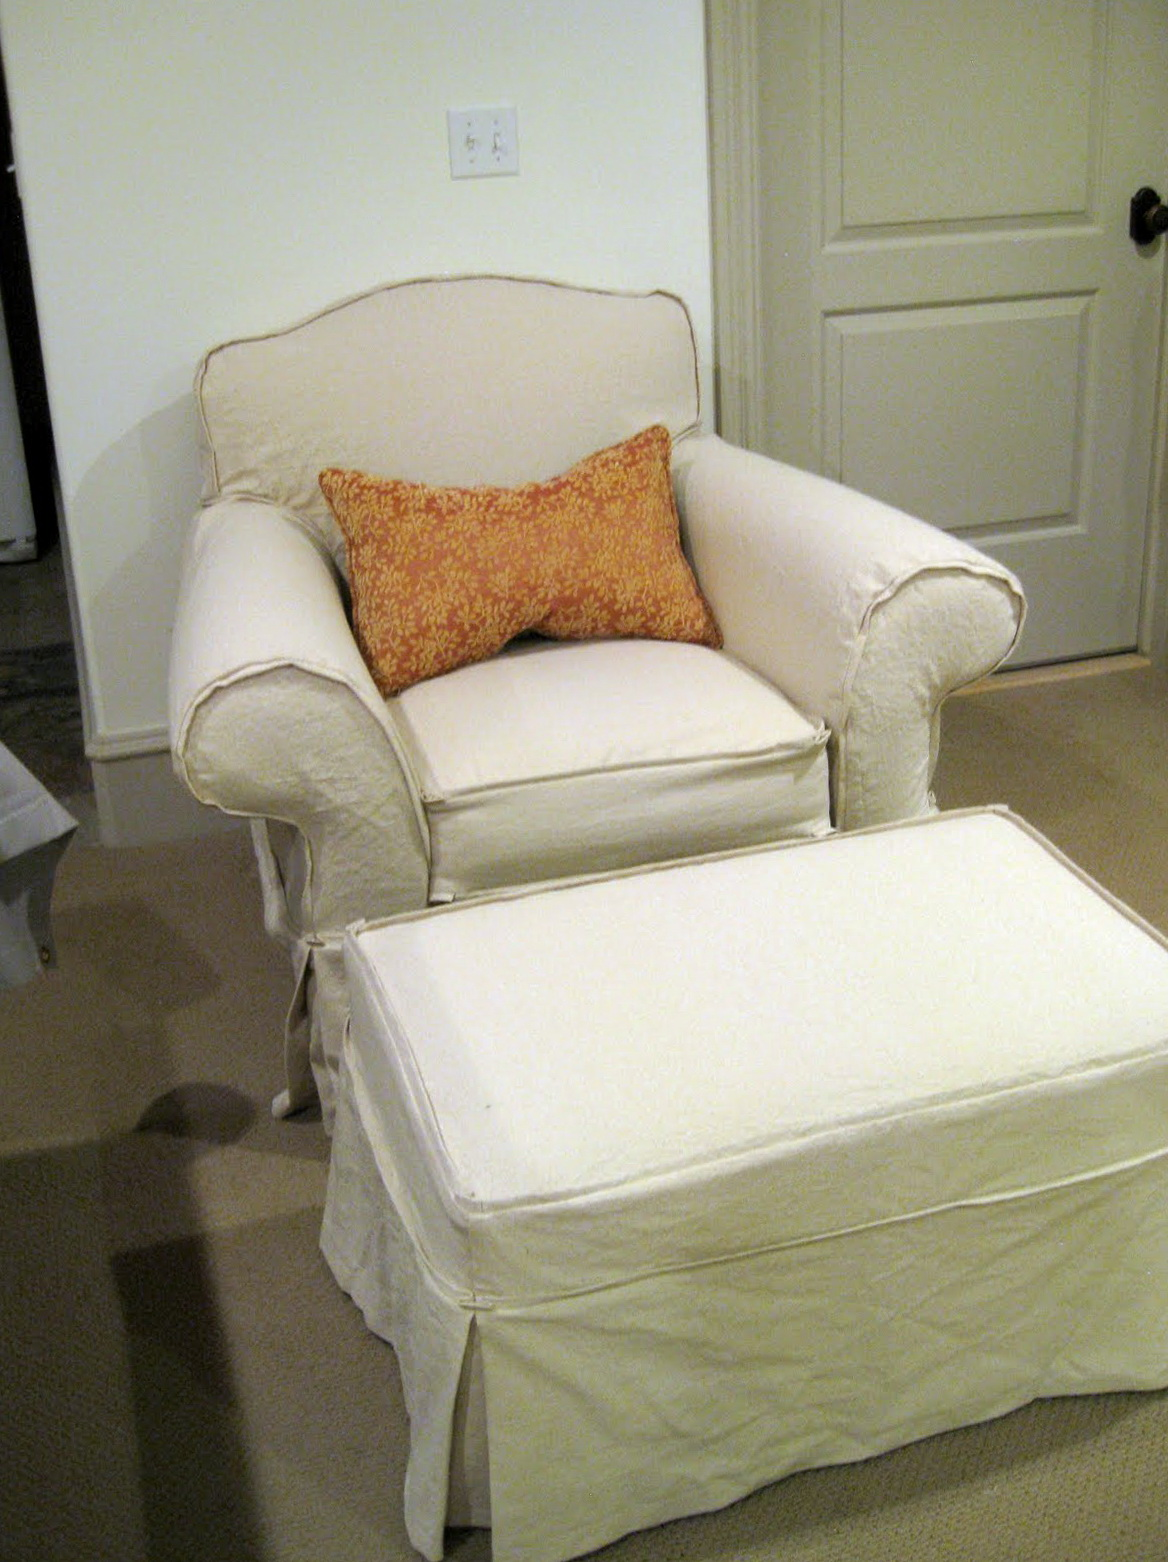 Slipcover For Oversized Chair And Ottoman Slipcovers For Ottomans And Chairs Home Design Ideas